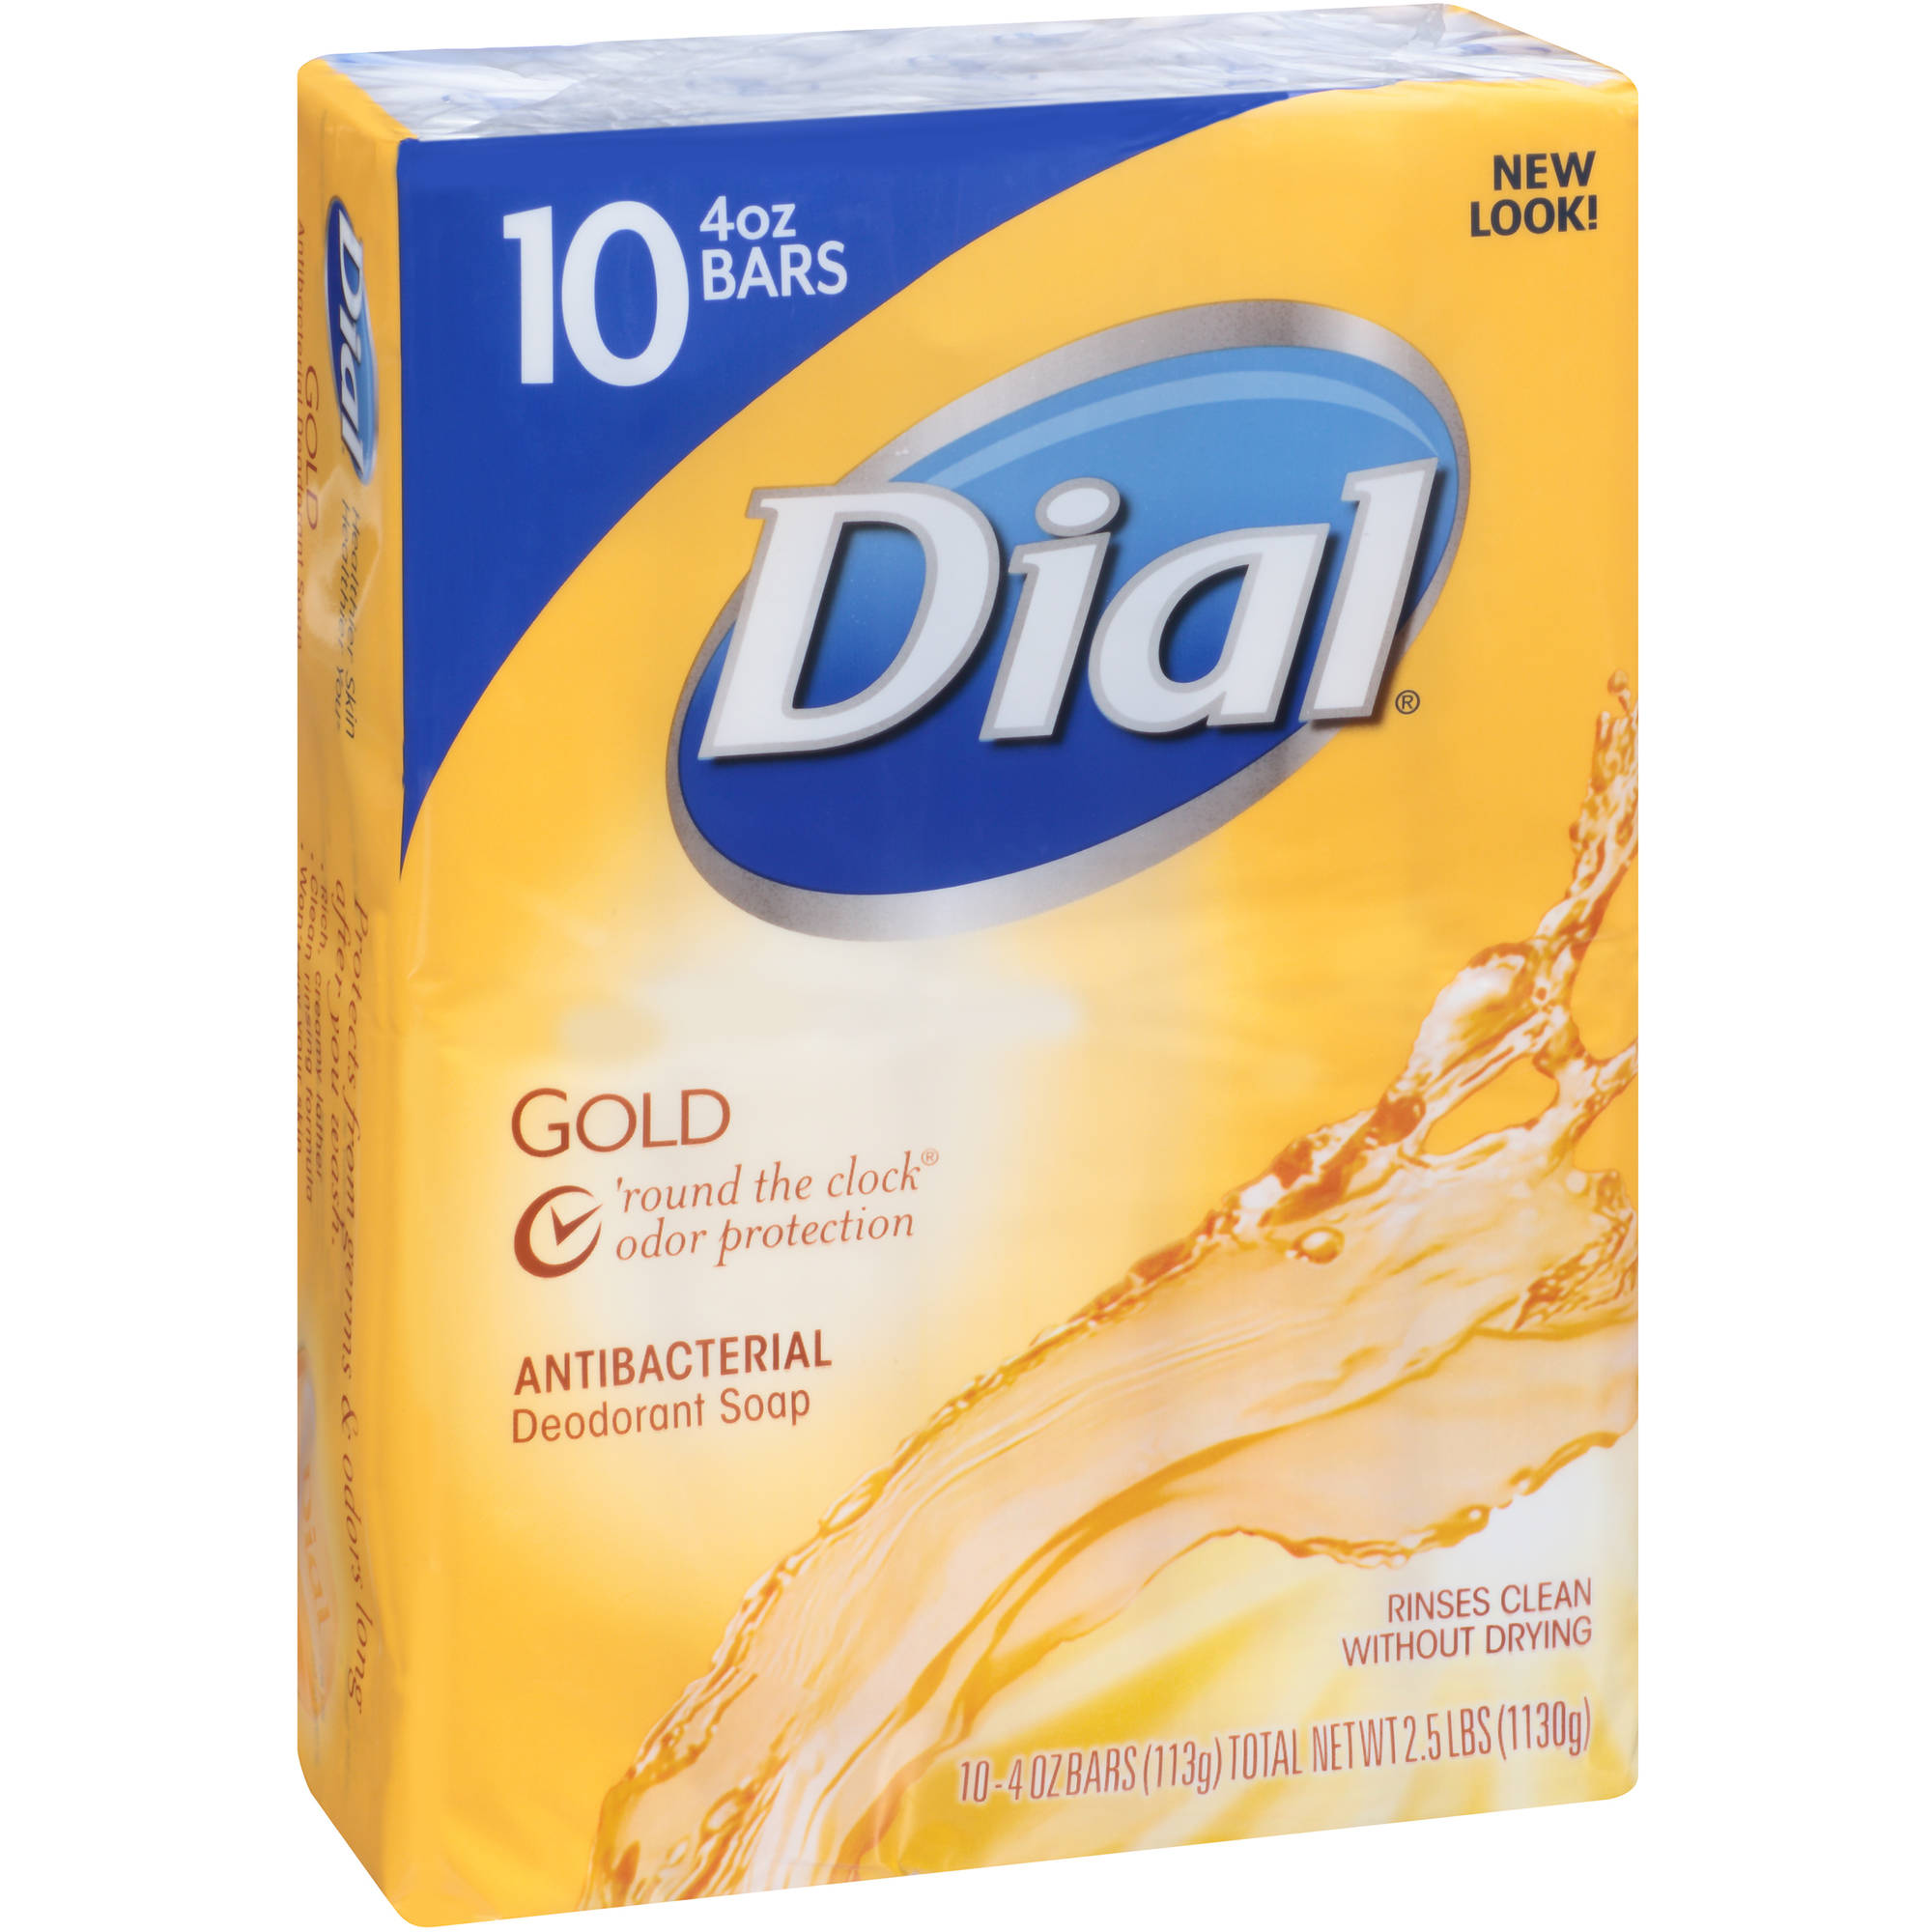 Dial Gold Antibacterial Deodorant Bar Soap, 4 oz, 10 count